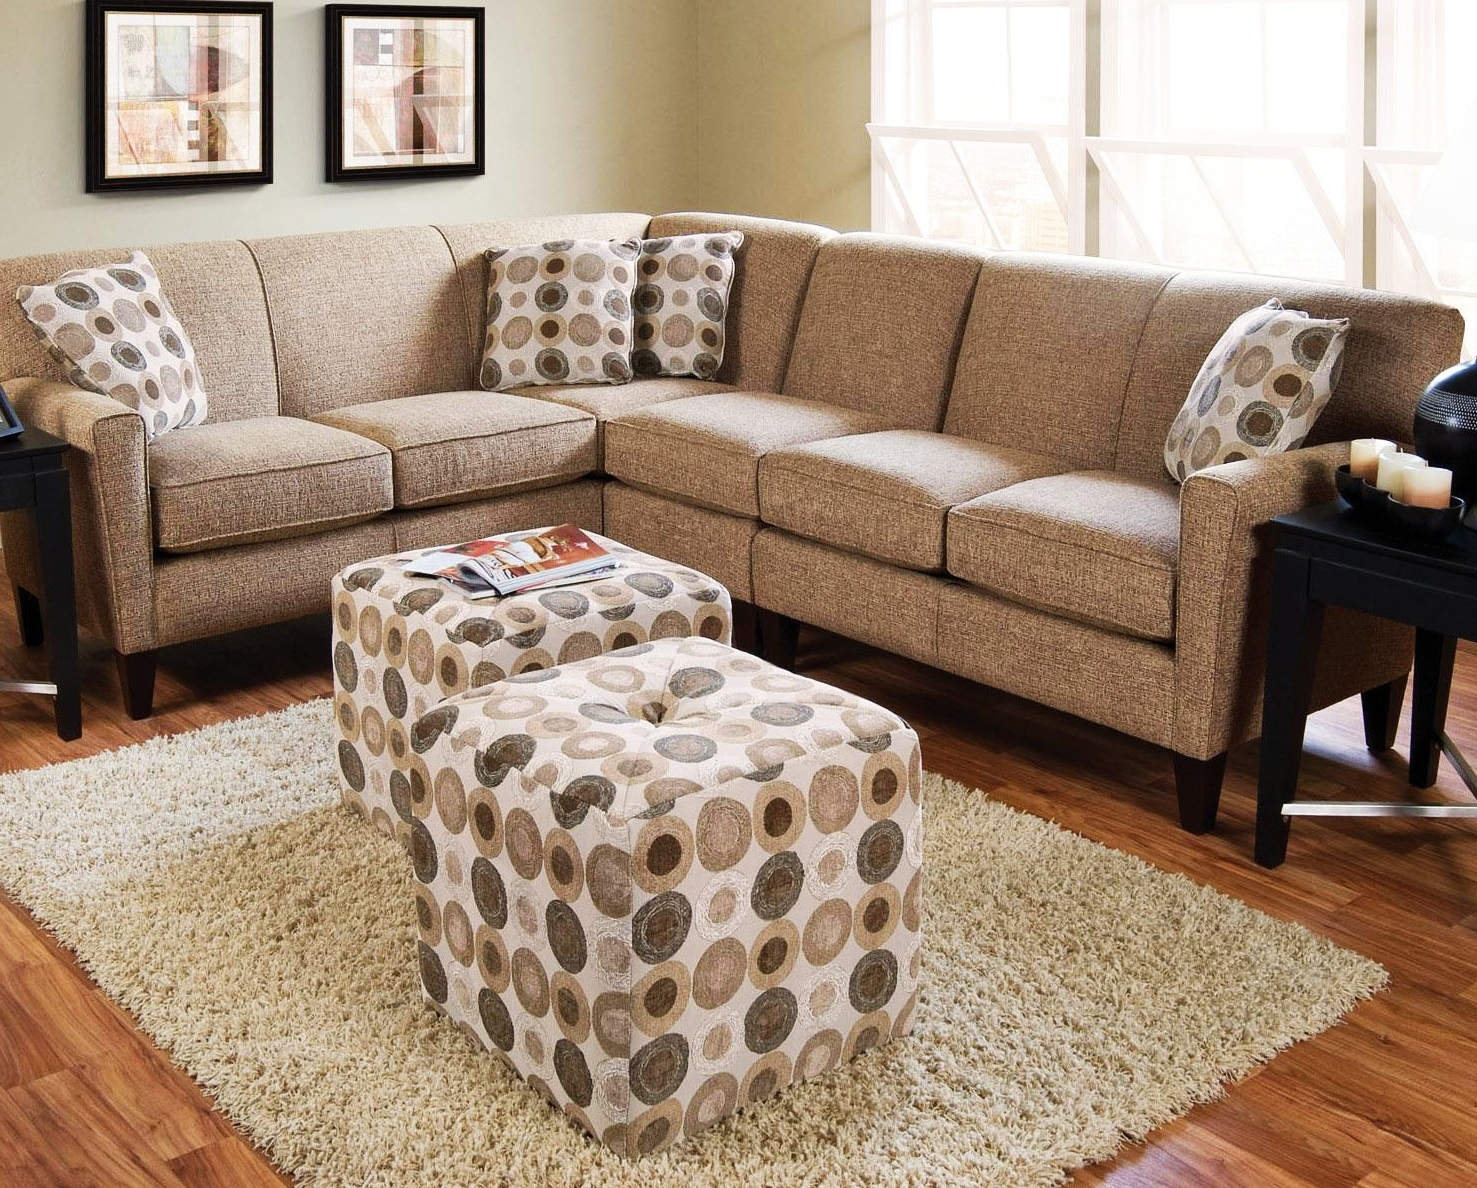 Fashionable Cheap Sectional Sofas Small Space Bedroom Furniture Small Regarding Small Sectional Sofas For Small Spaces (View 10 of 15)